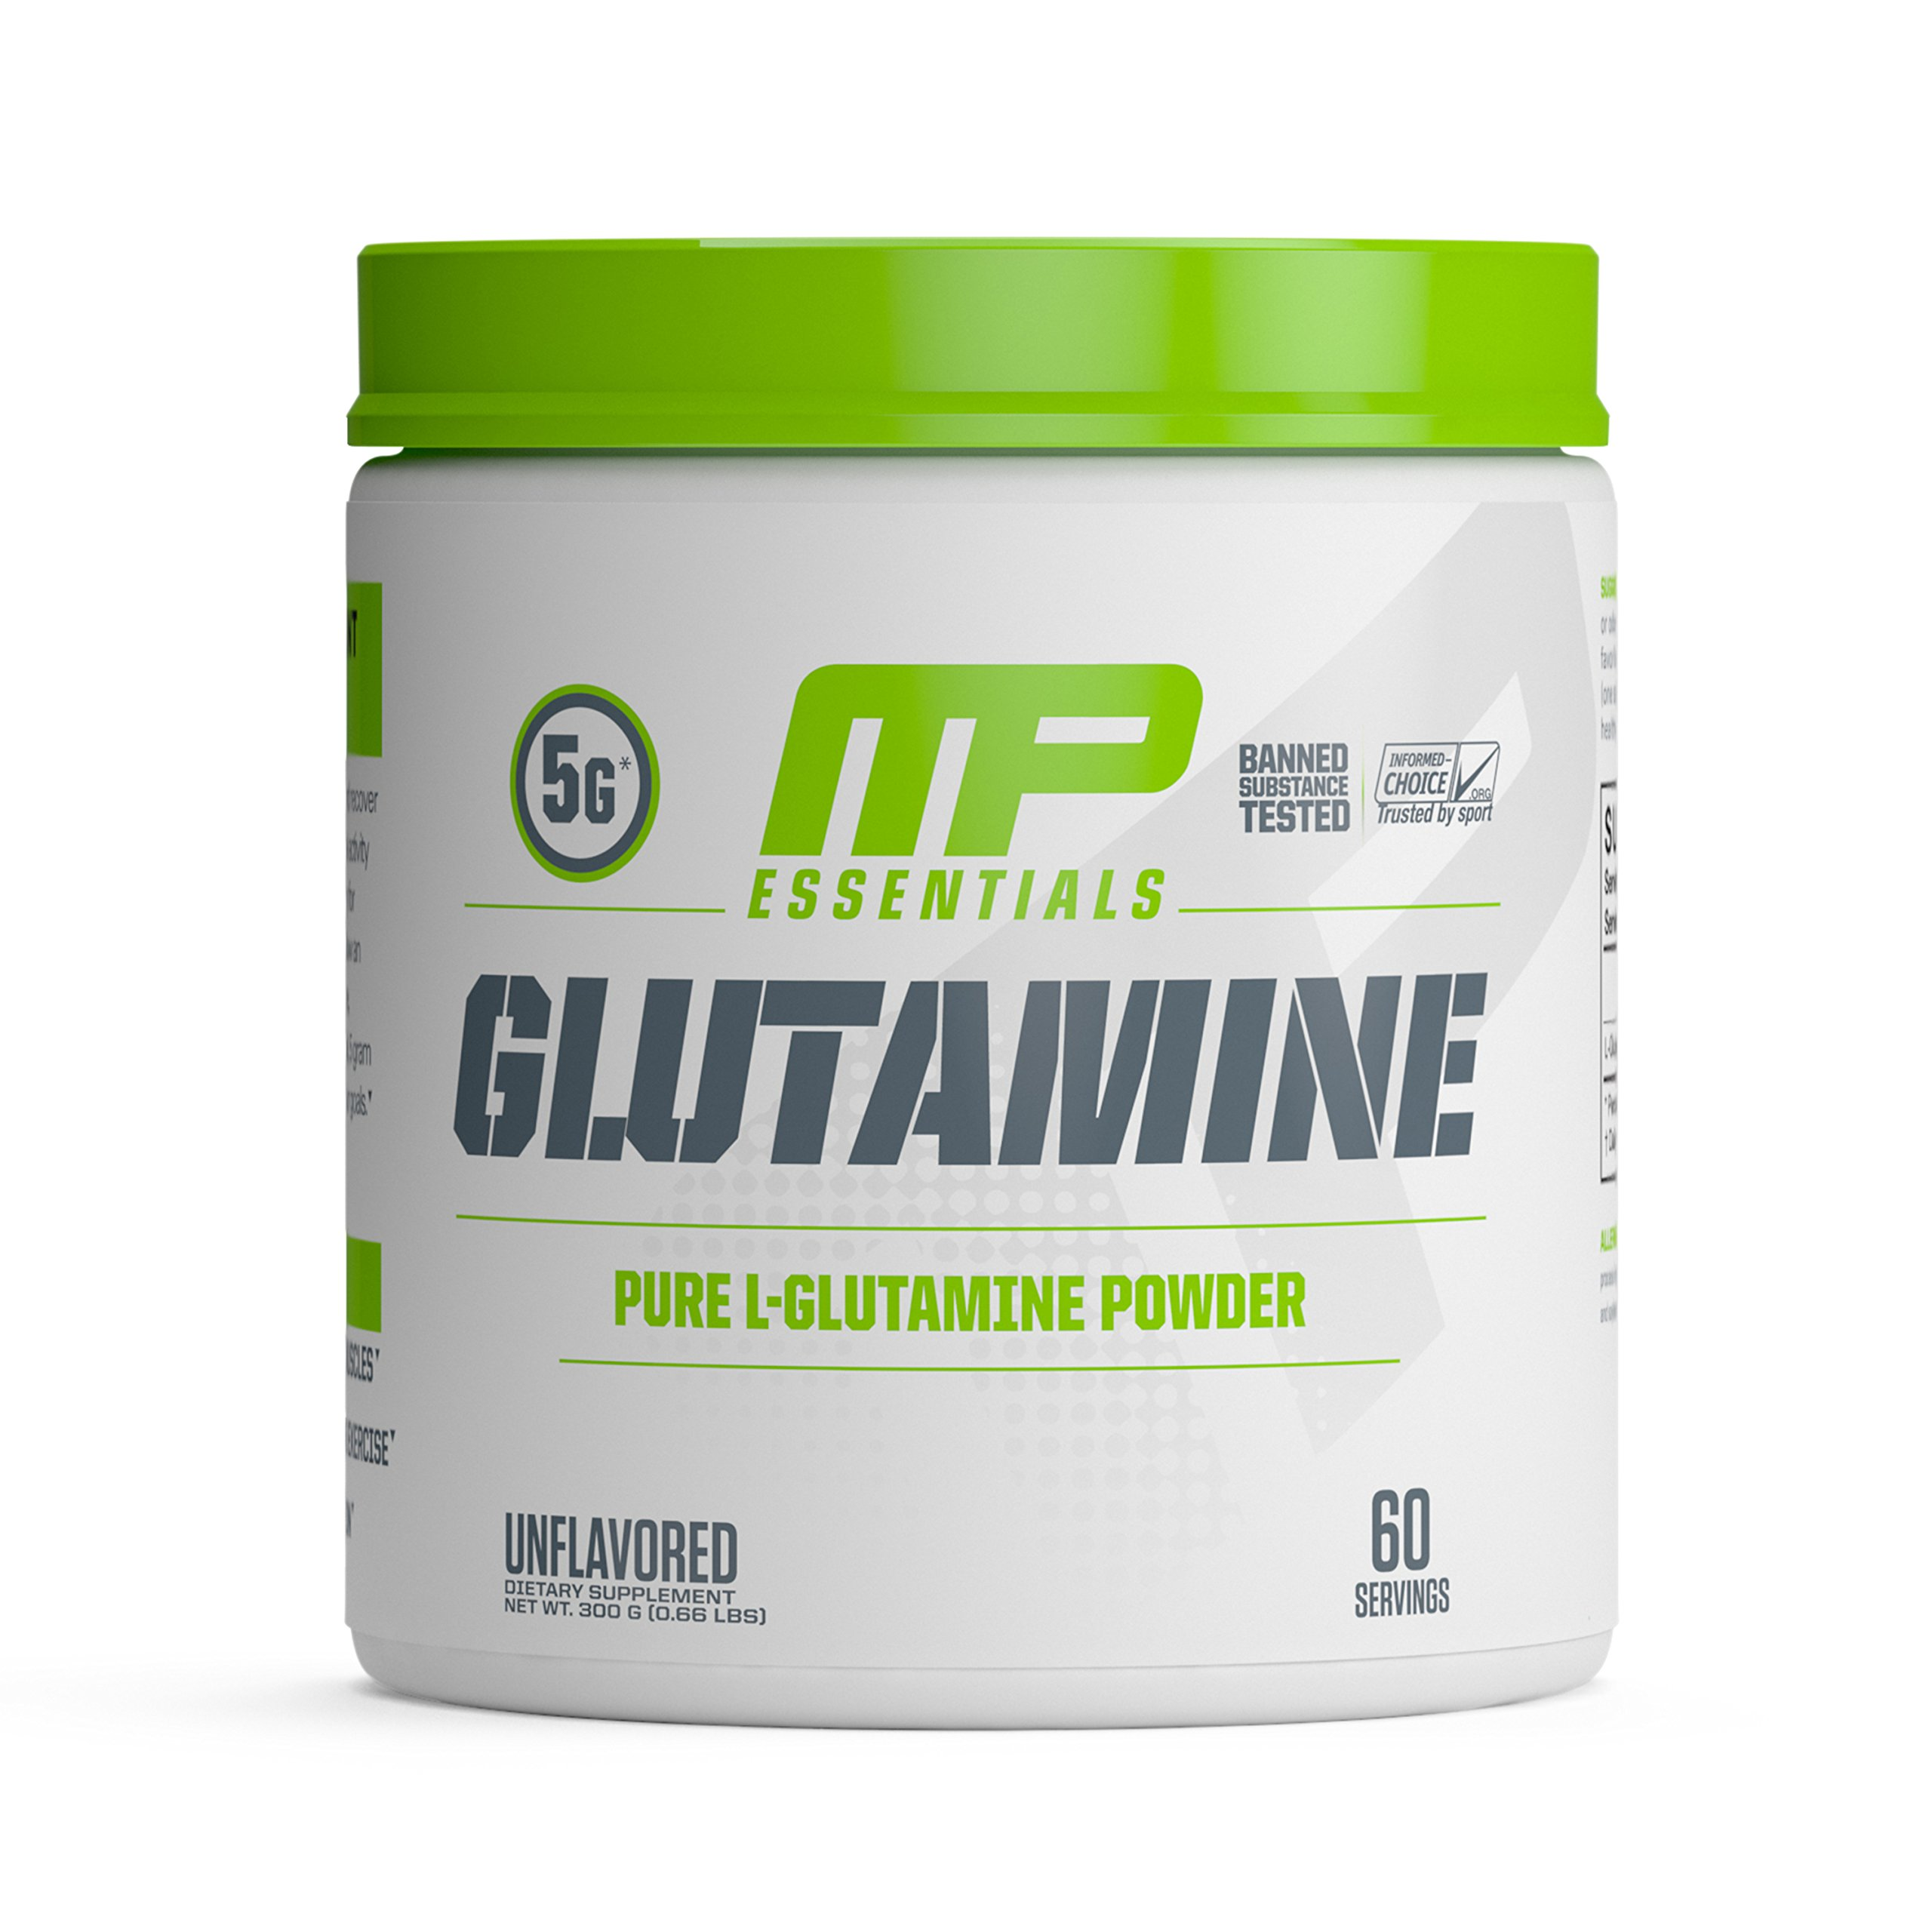 MP Essentials 100% Pure Glutamine Powder, Muscle Growth and Recovery, MusclePharm, 300g, 60 Servings